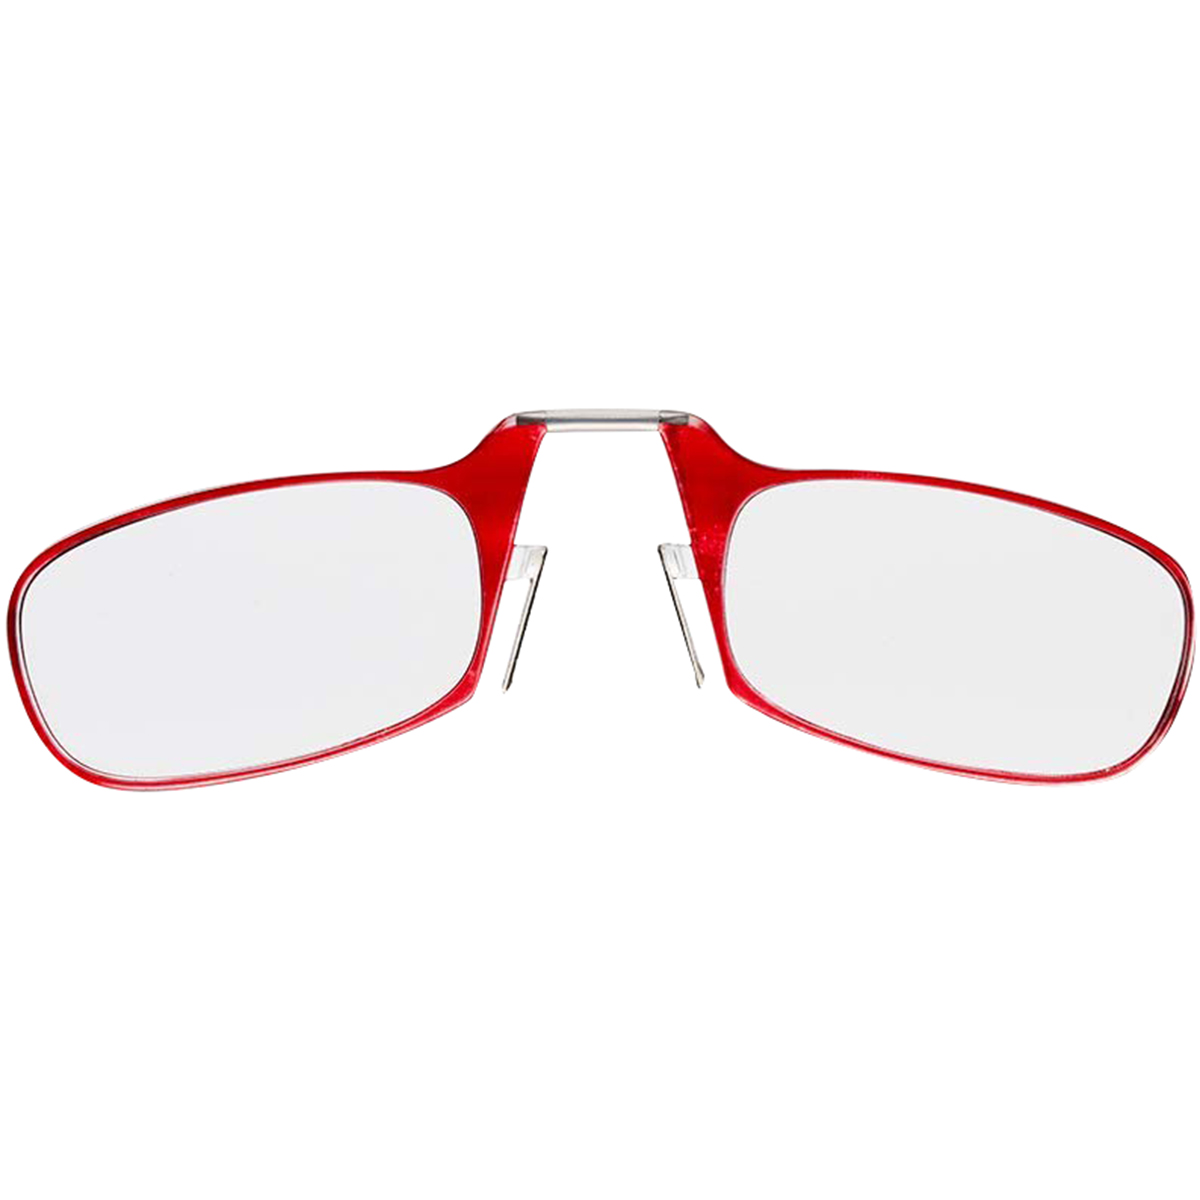 ThinOptics-Secure-Fit-Armless-Ultralight-Reading-Glasses-with-Universal-Pod-Case thumbnail 28